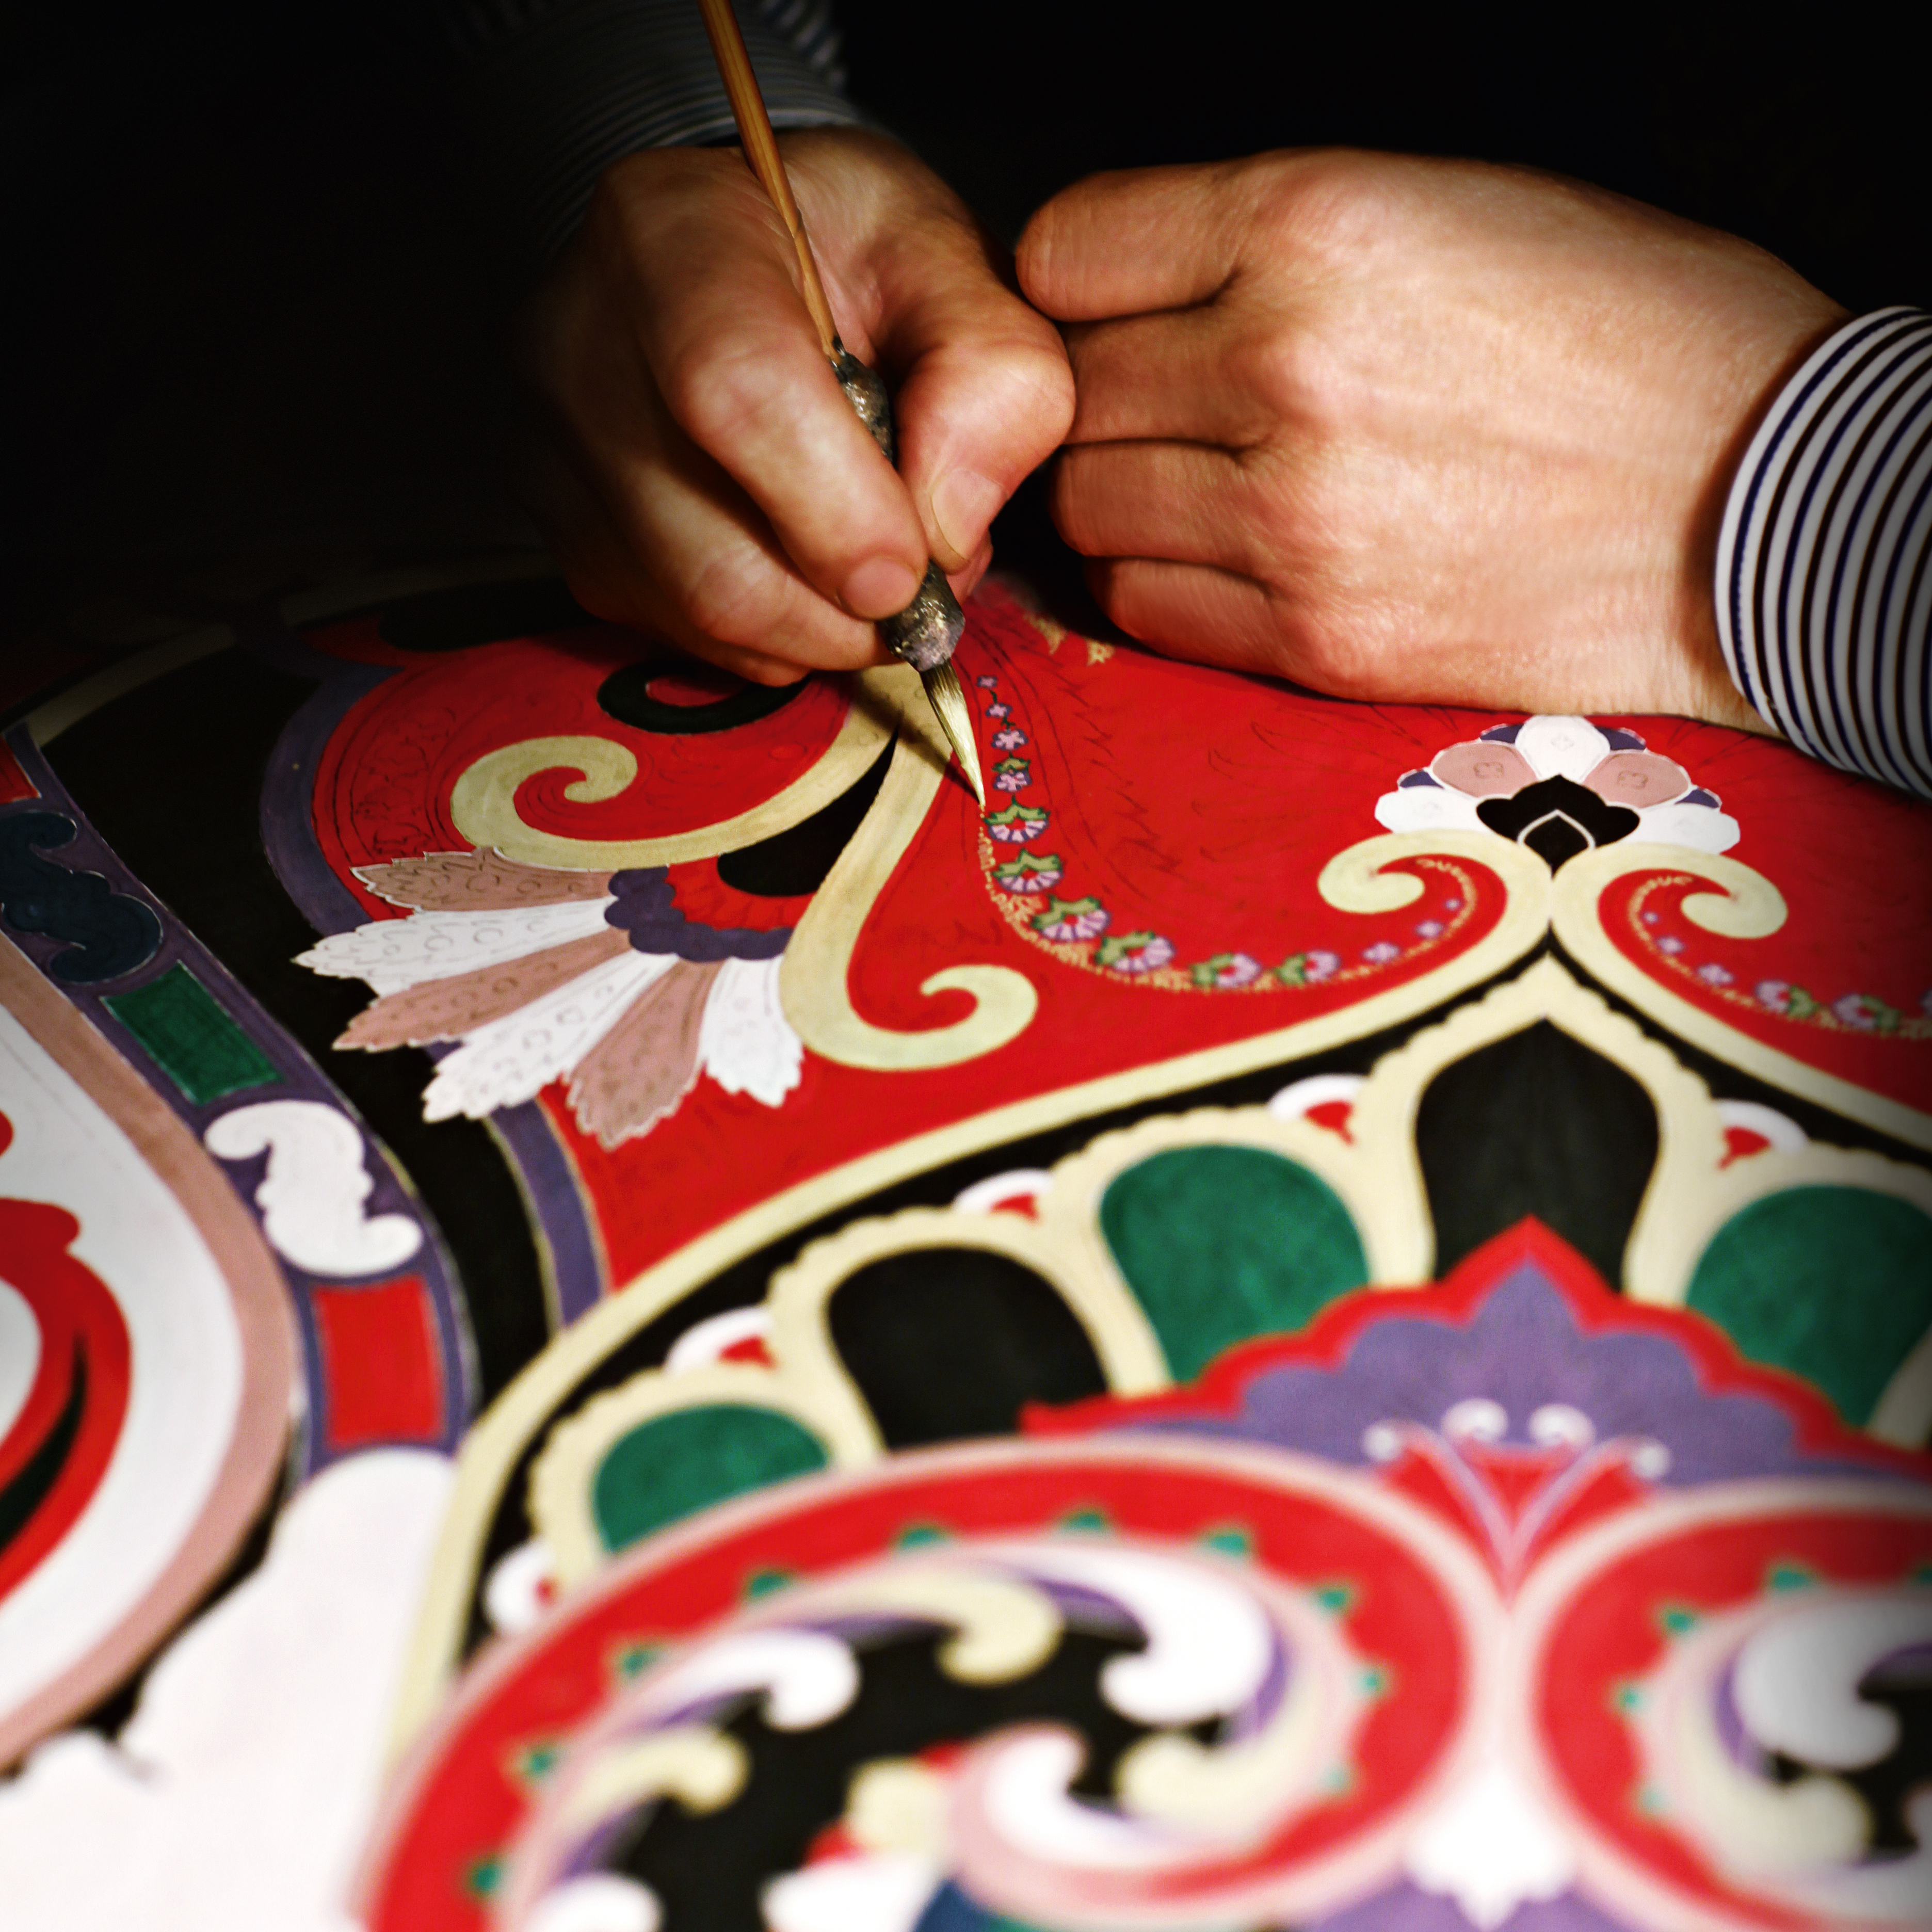 The Paisley Motif made its debut in 1981 with a furnishing textiles line, quickly becoming set as the brand mark of identity.